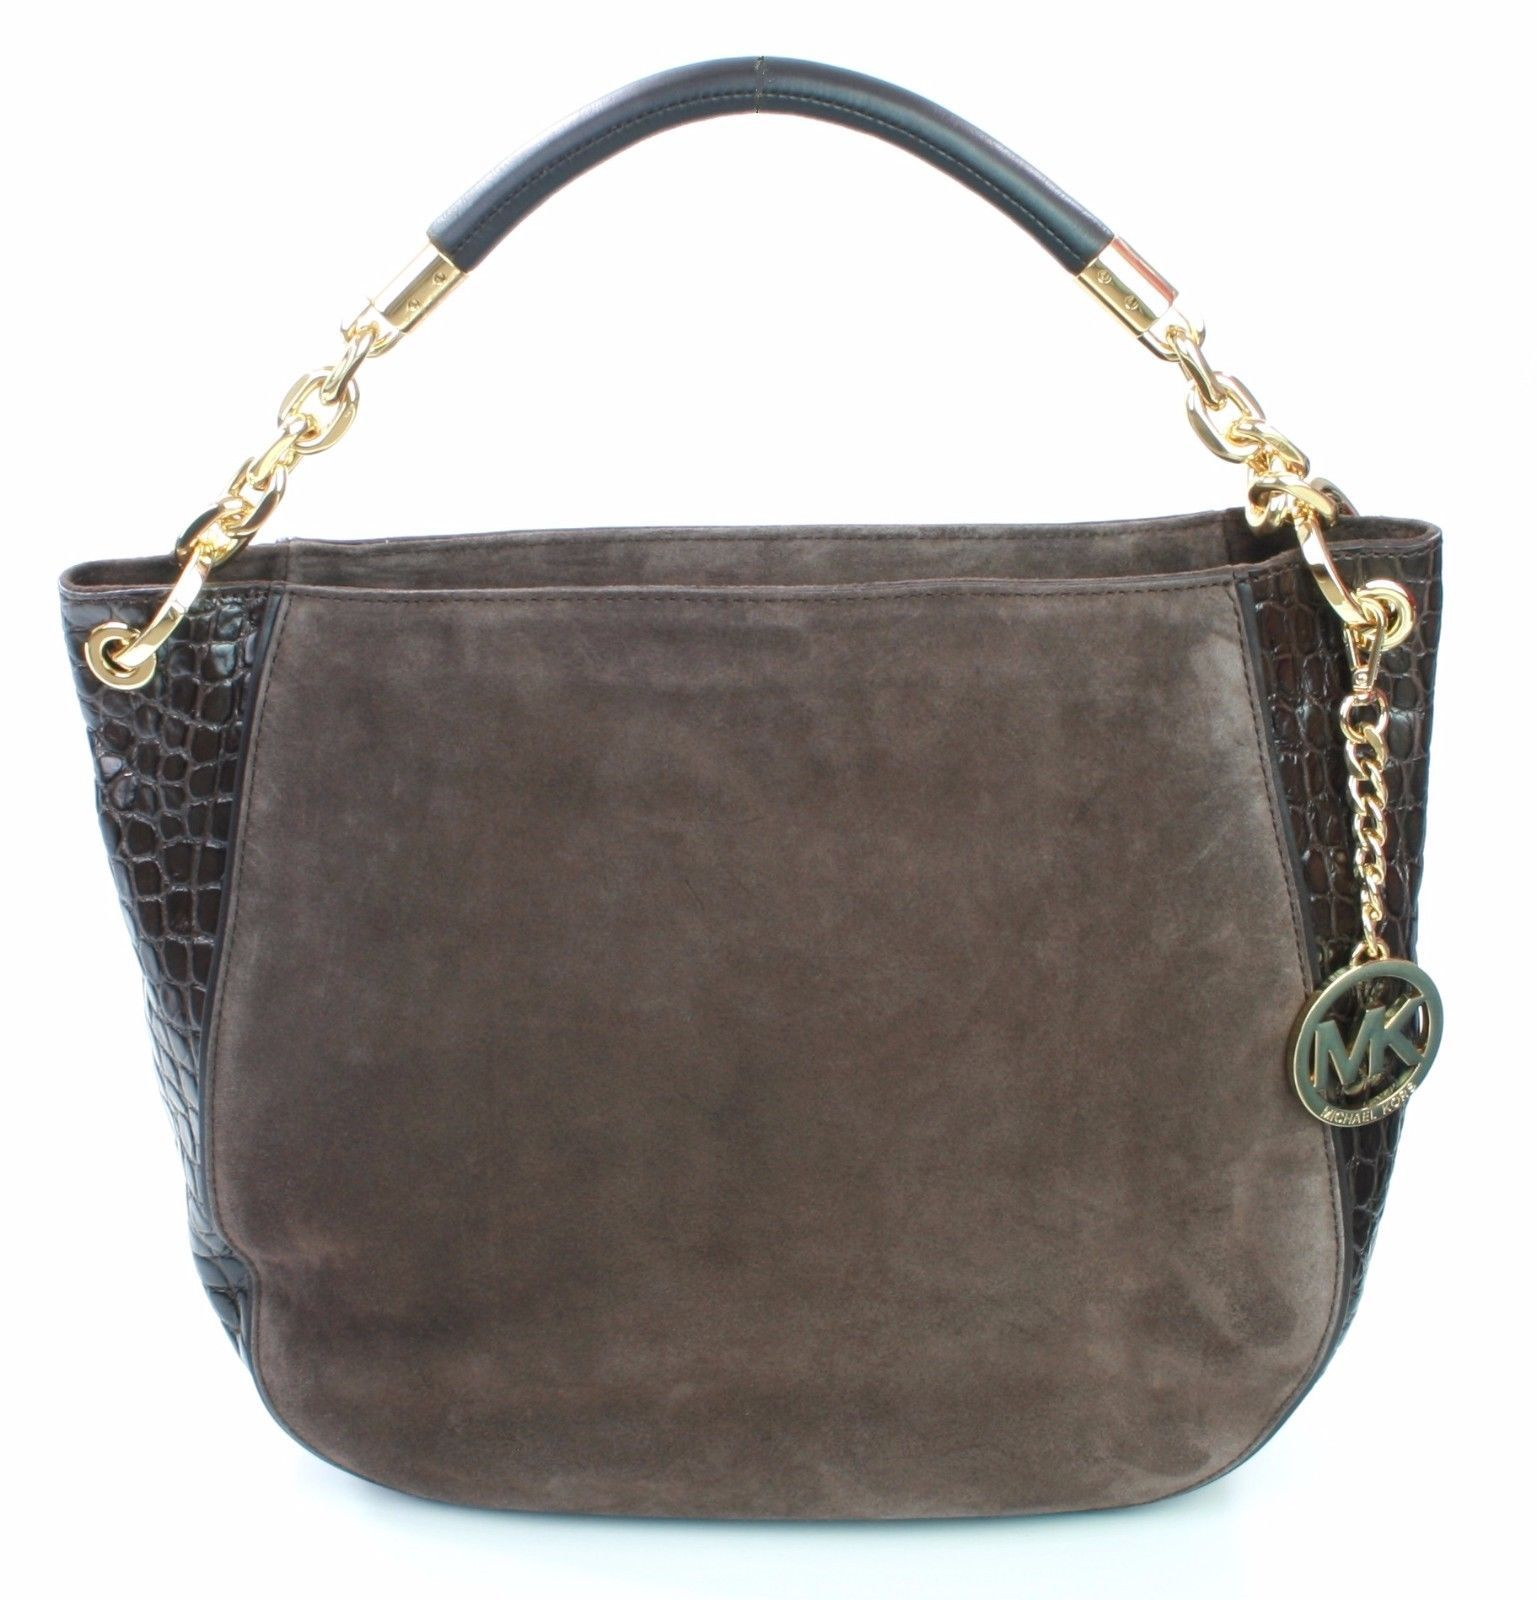 263dd0de0ab8 Michael Kors Stanthorpe Suede / Leather and similar items. 57